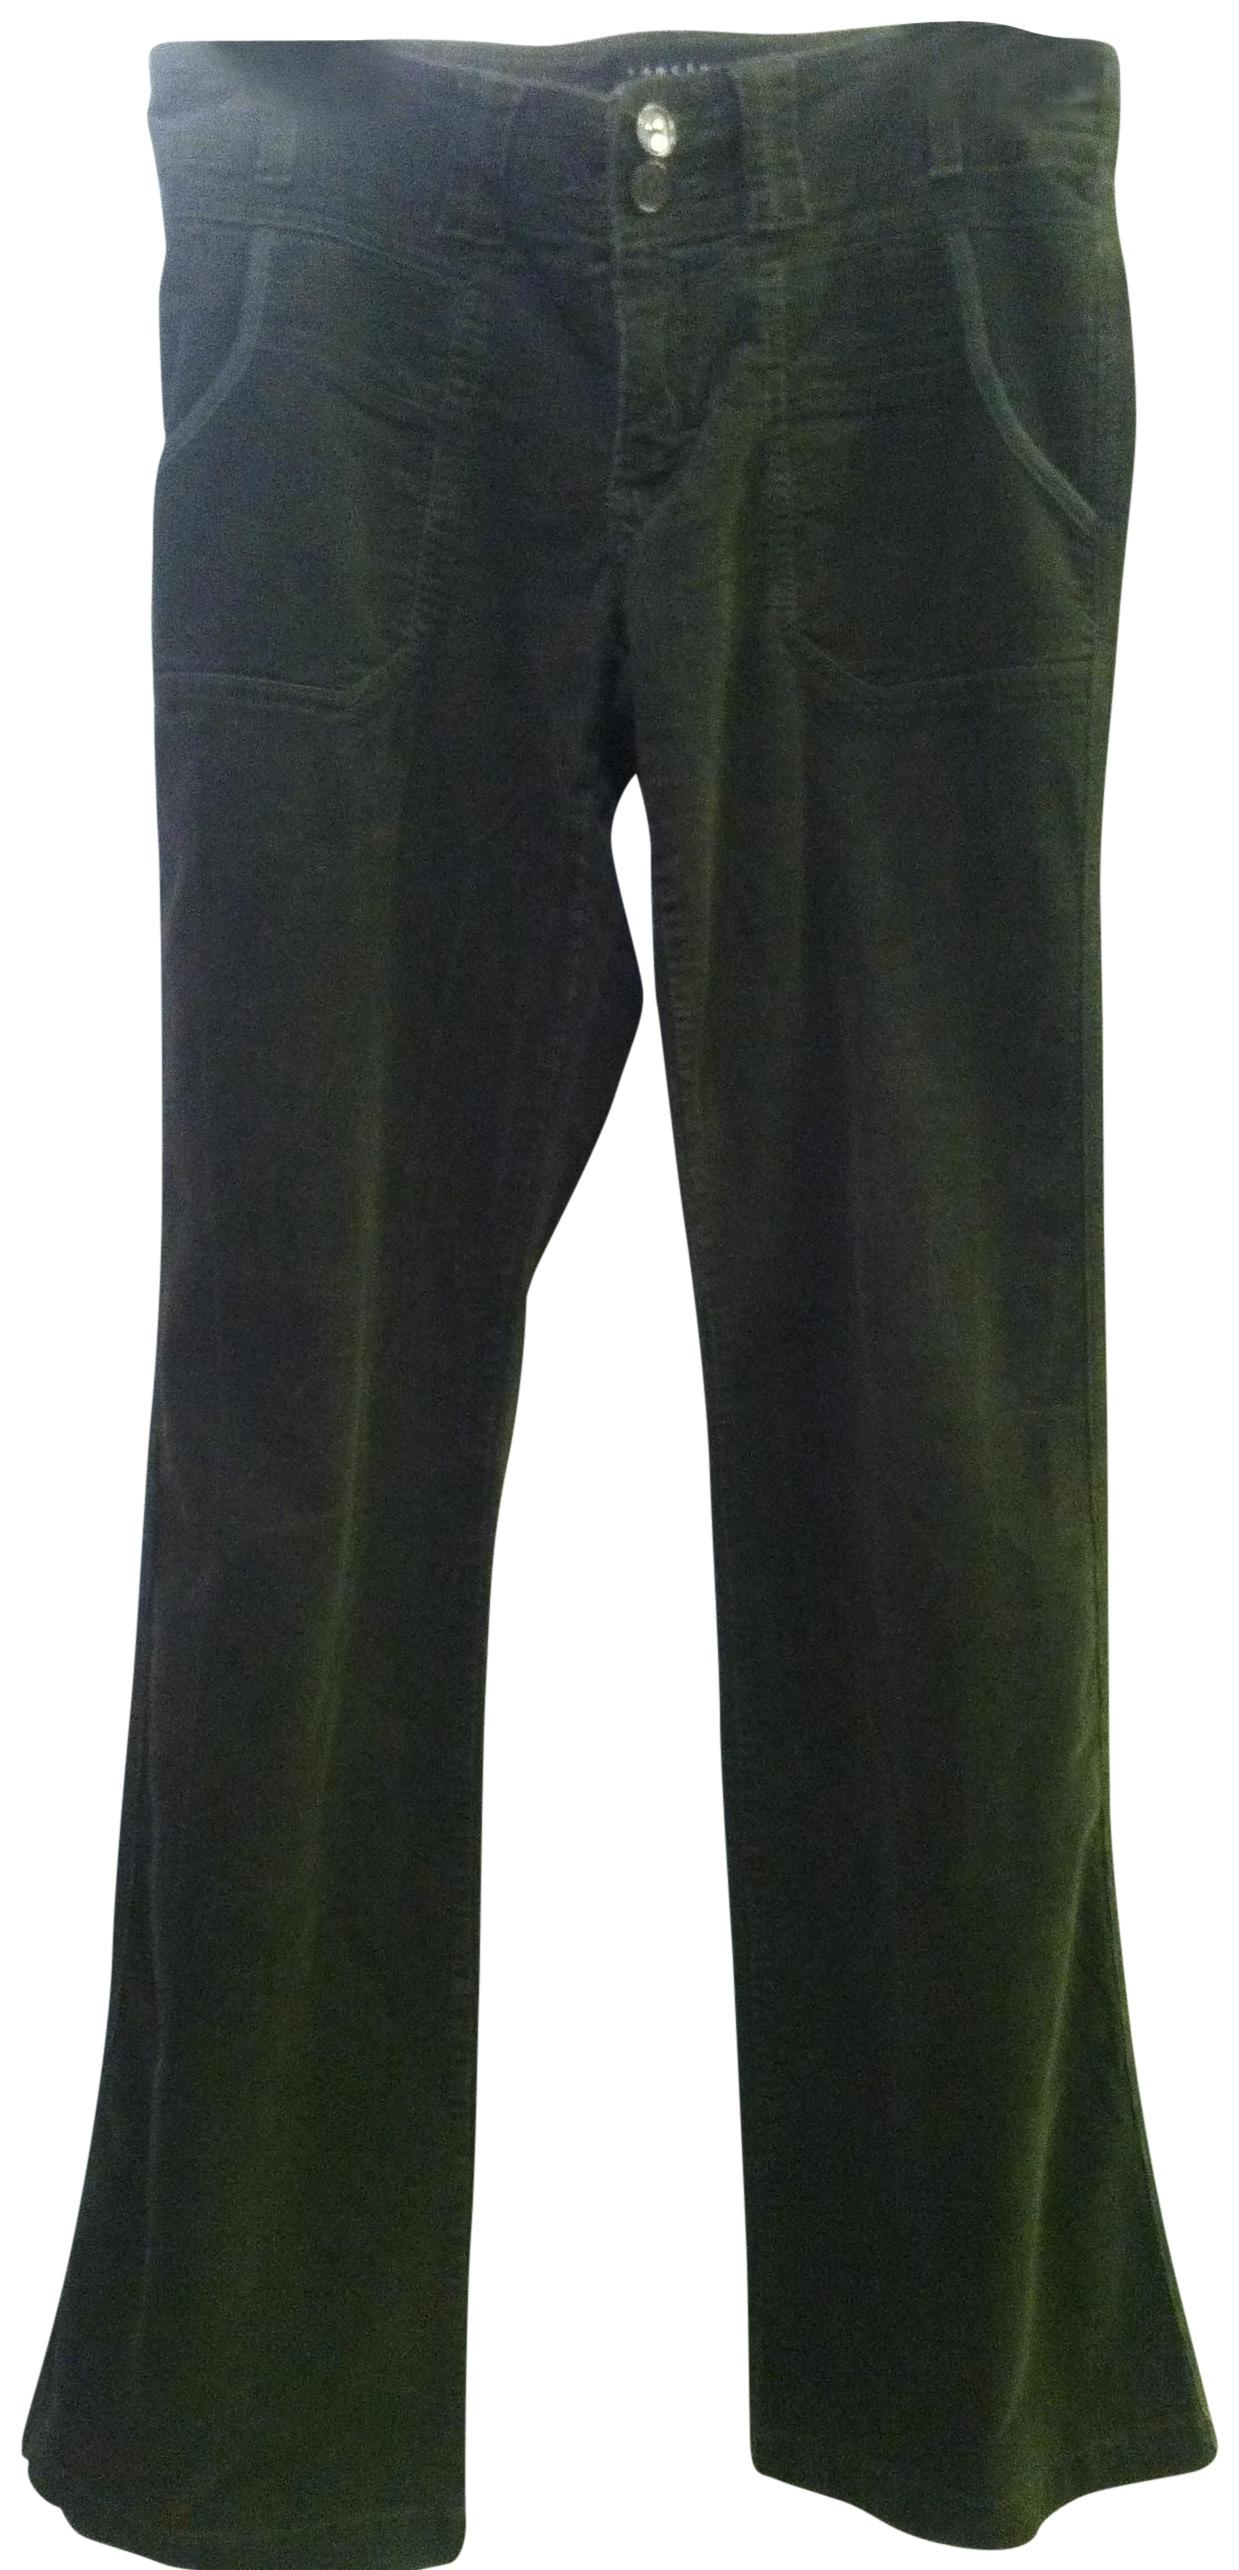 Crafted from % cotton, Olive Green Corduroy pants are the perfect combination of sharp tailoring and a casual sporty attitude, which makes it a versatile garment in a gents urban wardrobe. Wear it with matching waistcoat.